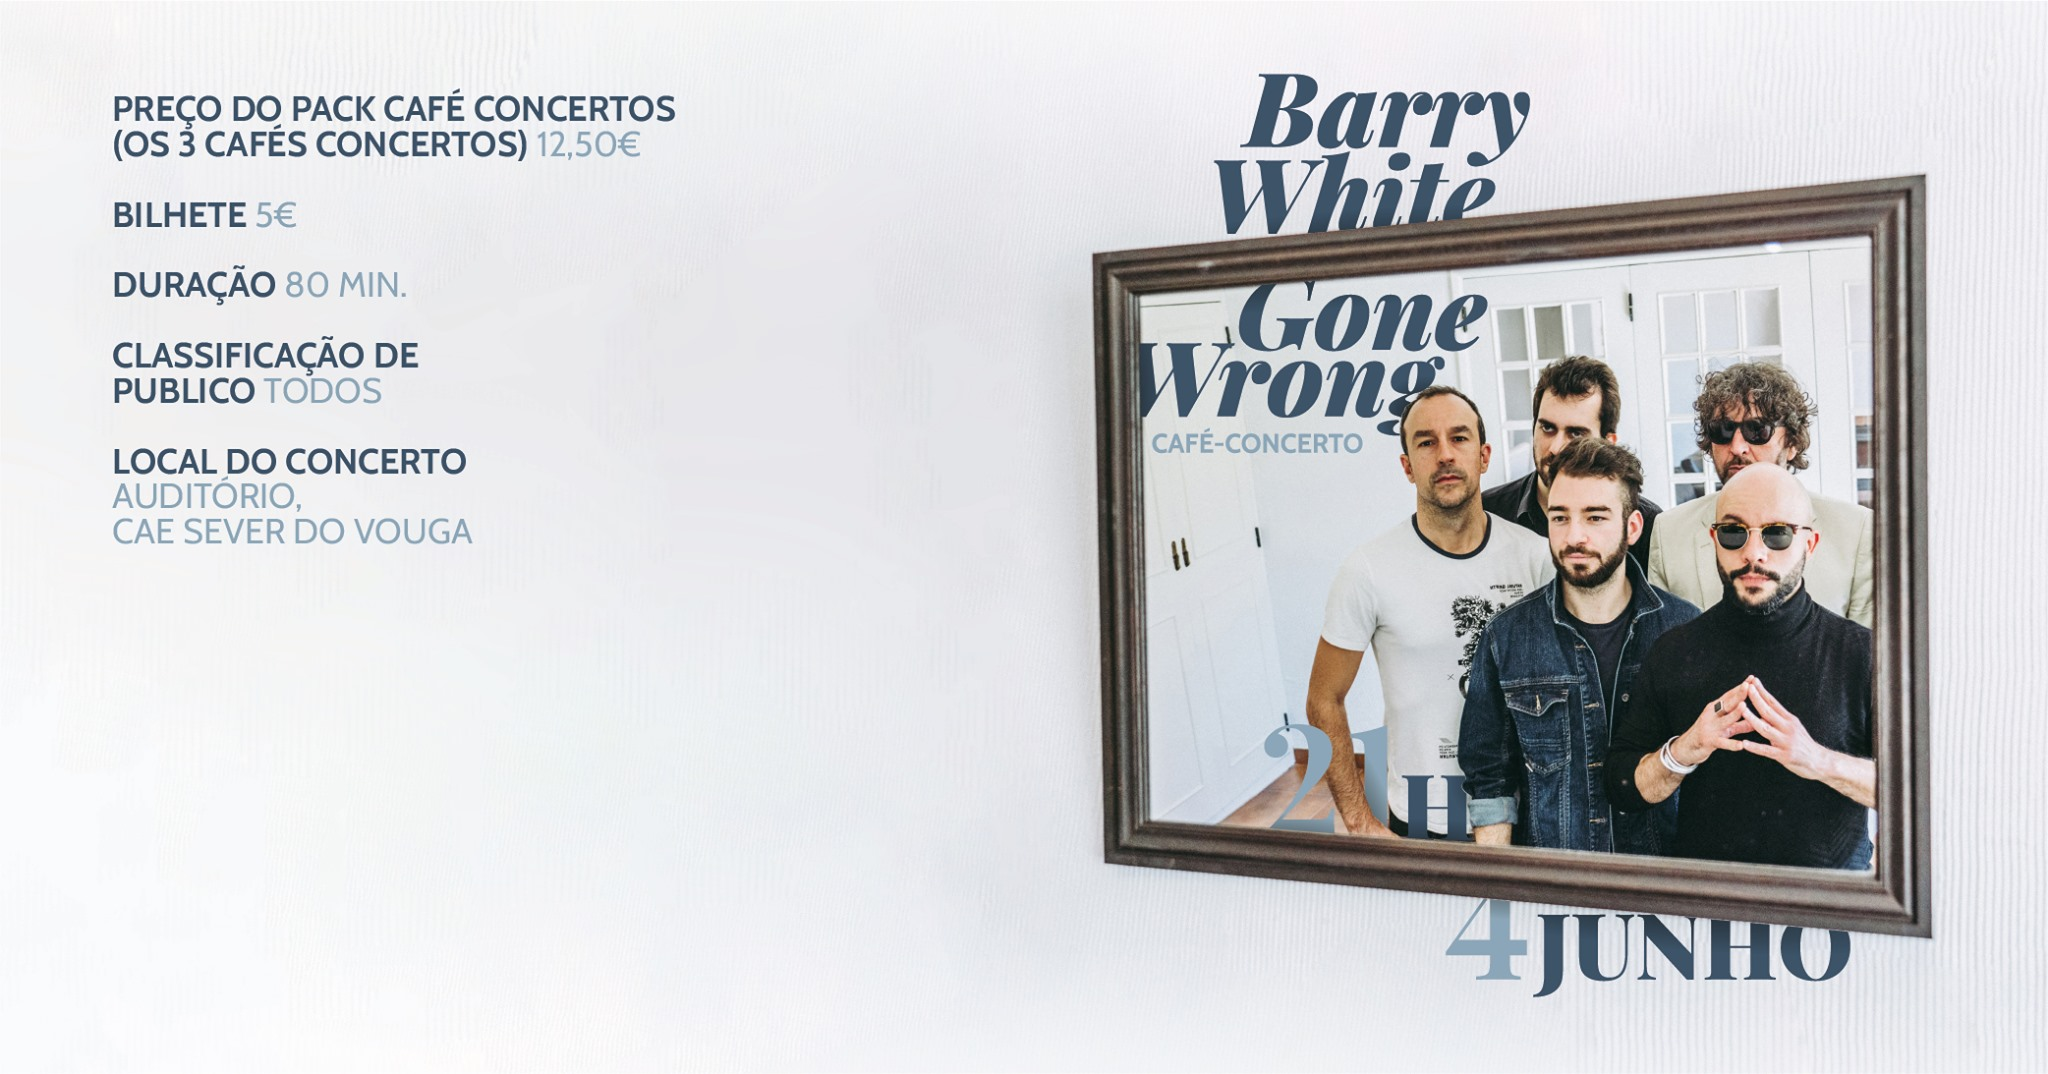 BARRY WHITE GONE WRONG - CAFÉ CONCERTO